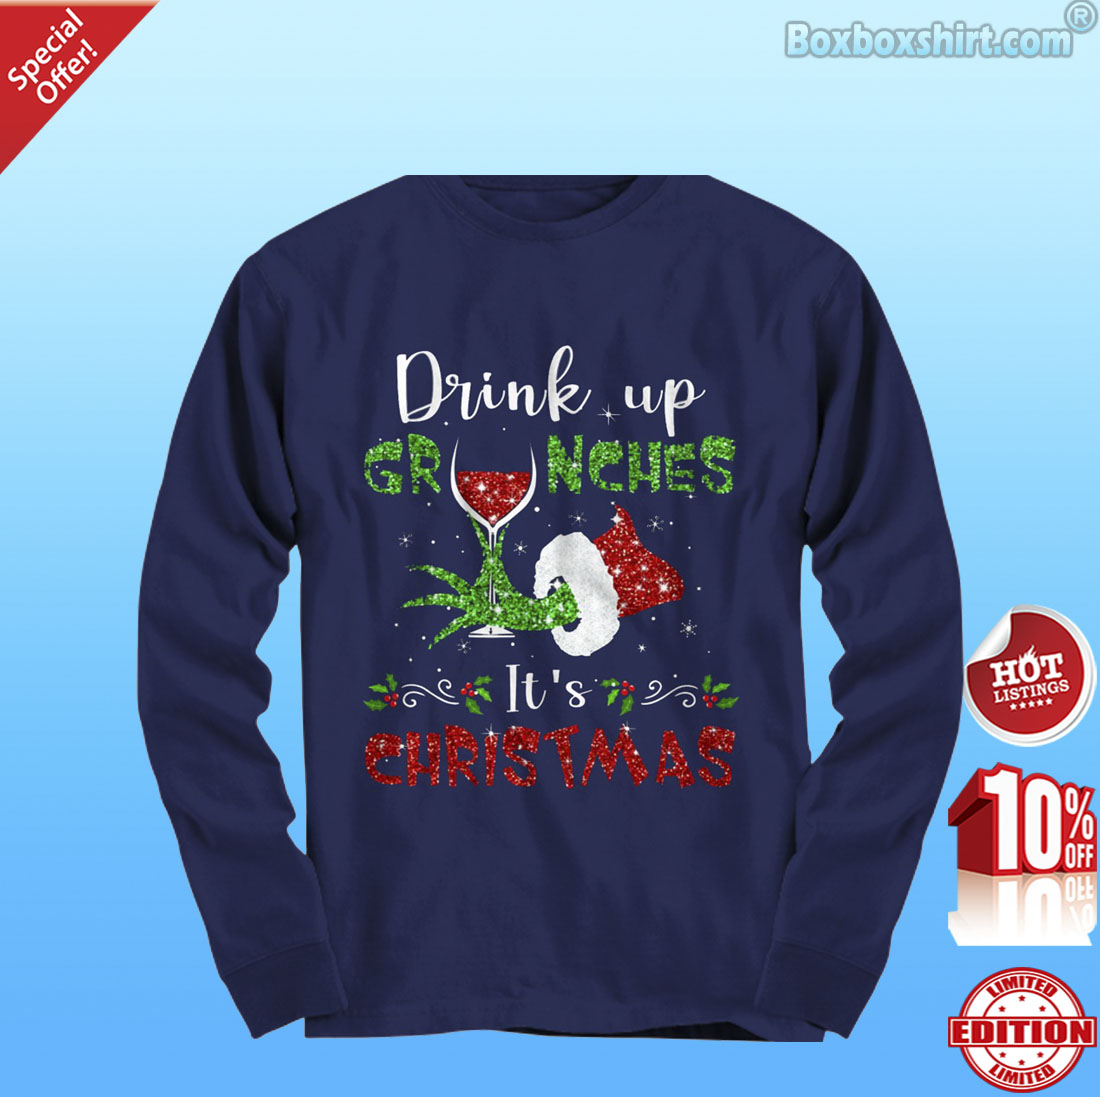 c60b58c4 Grinch hand drink up grinches it's Christmas shirt, hoodie and ...